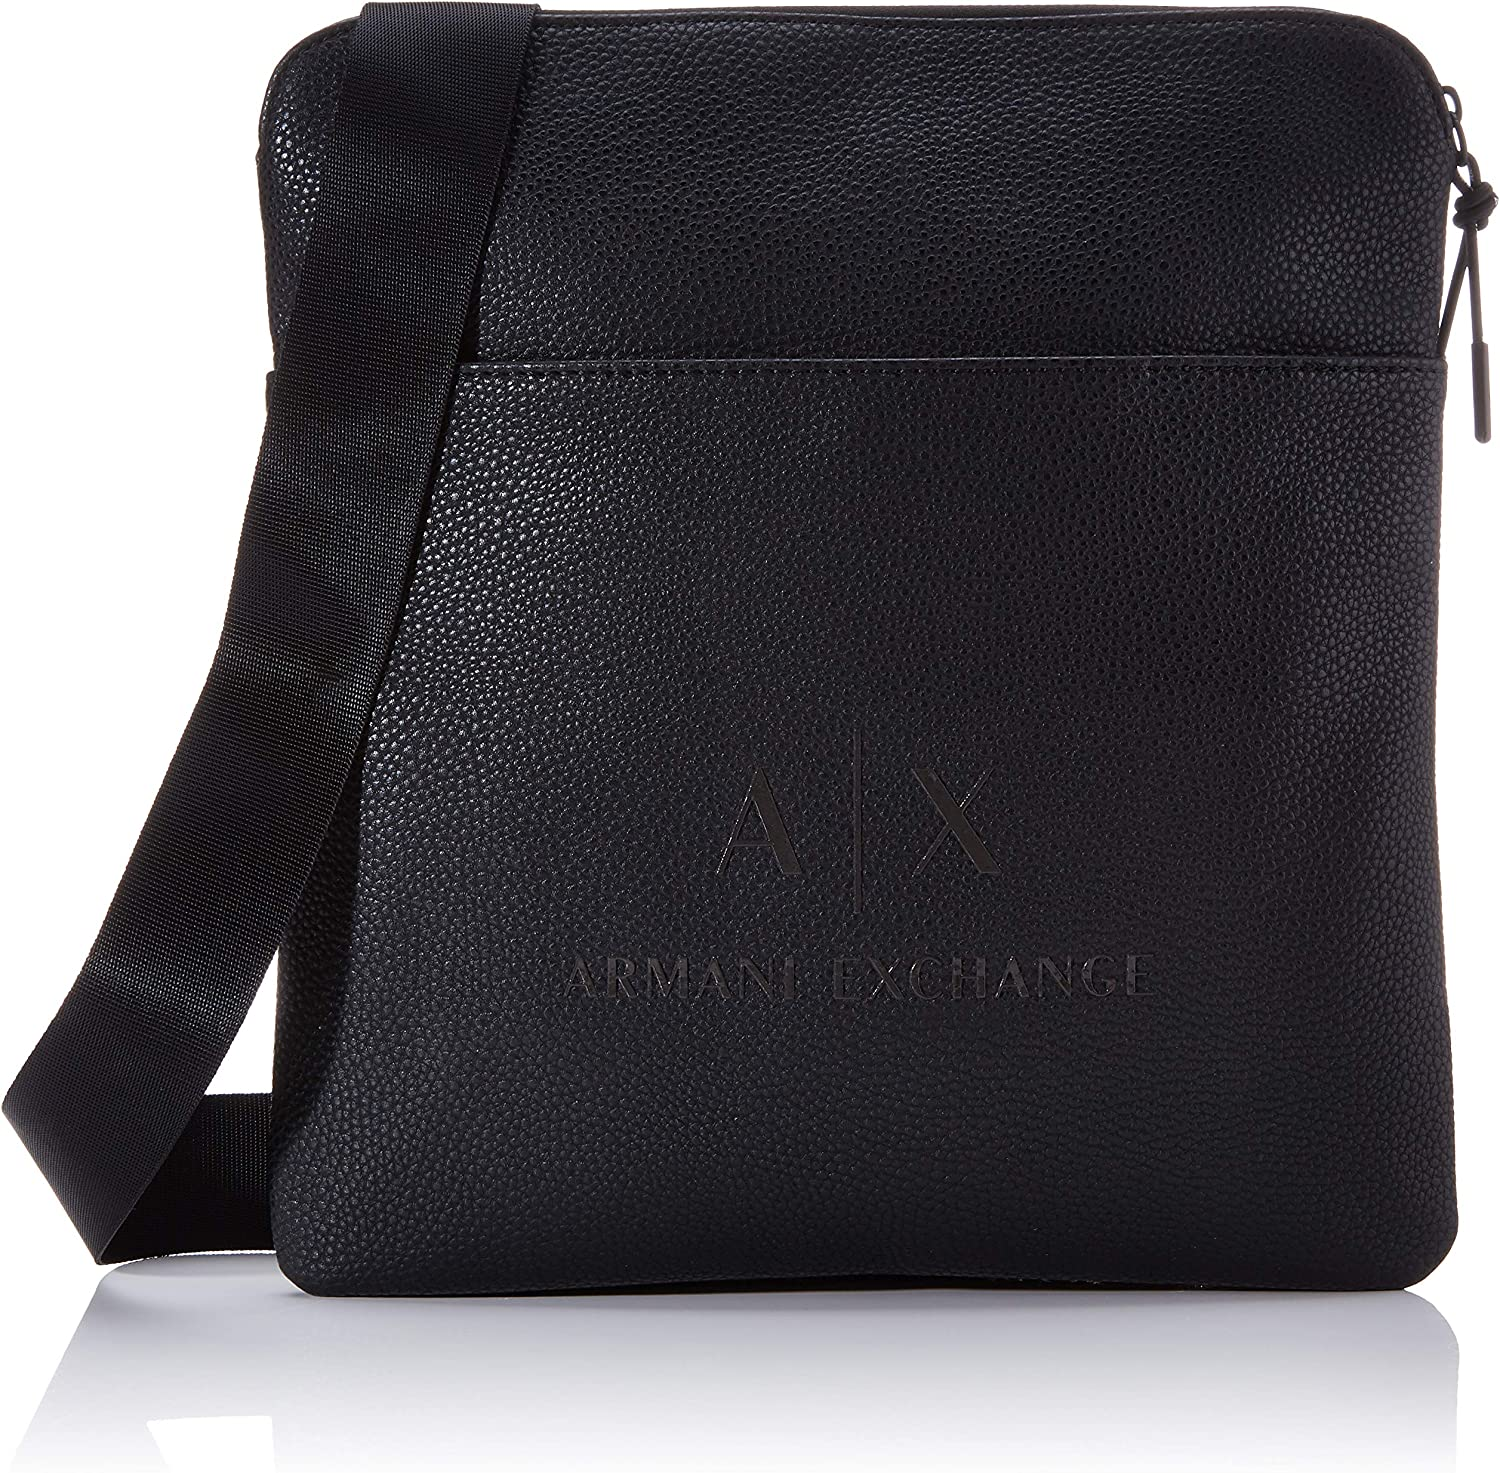 Armani Exchange - Medium Flat Crossbody Bag, Bolso bandolera Hombre